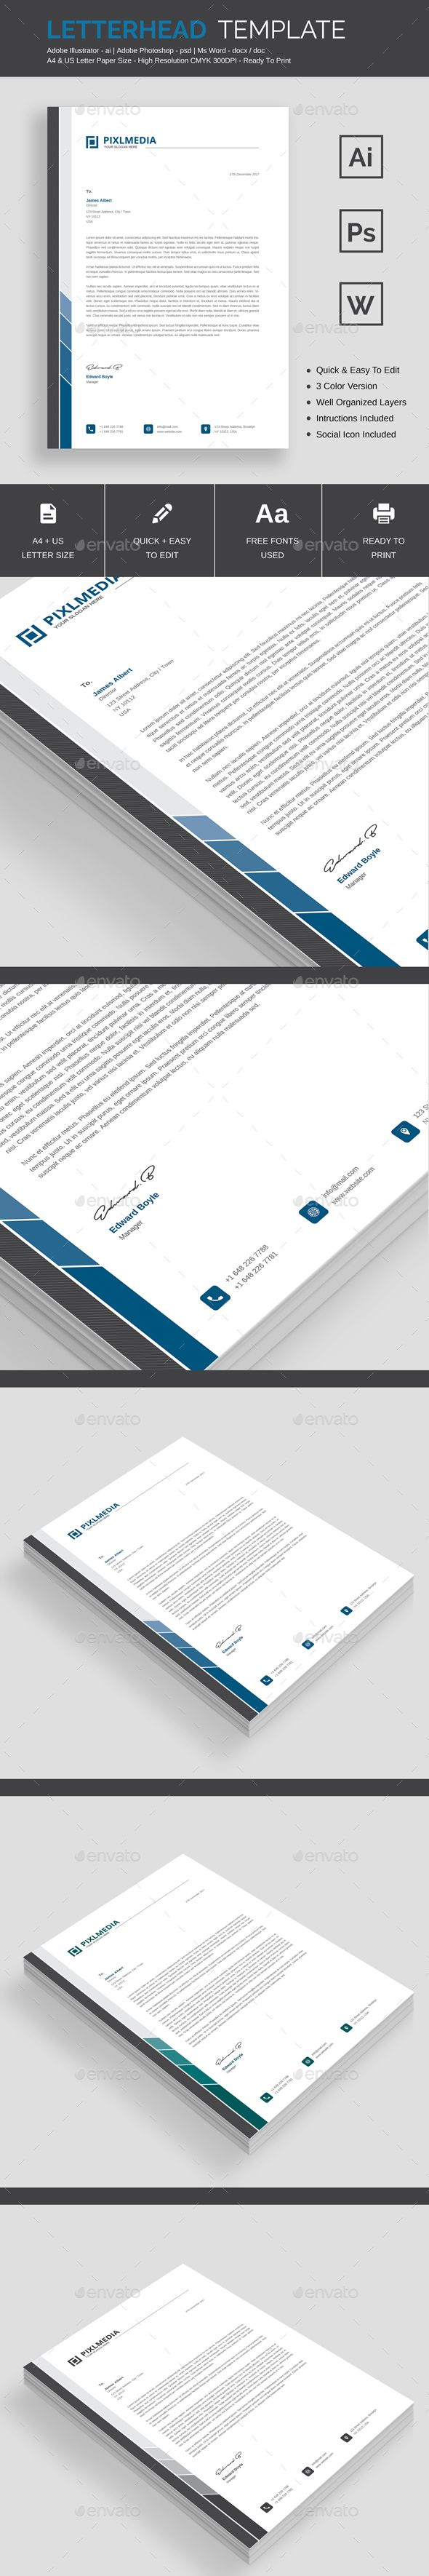 Business Letter Templates Free Download%0A Letterhead Template